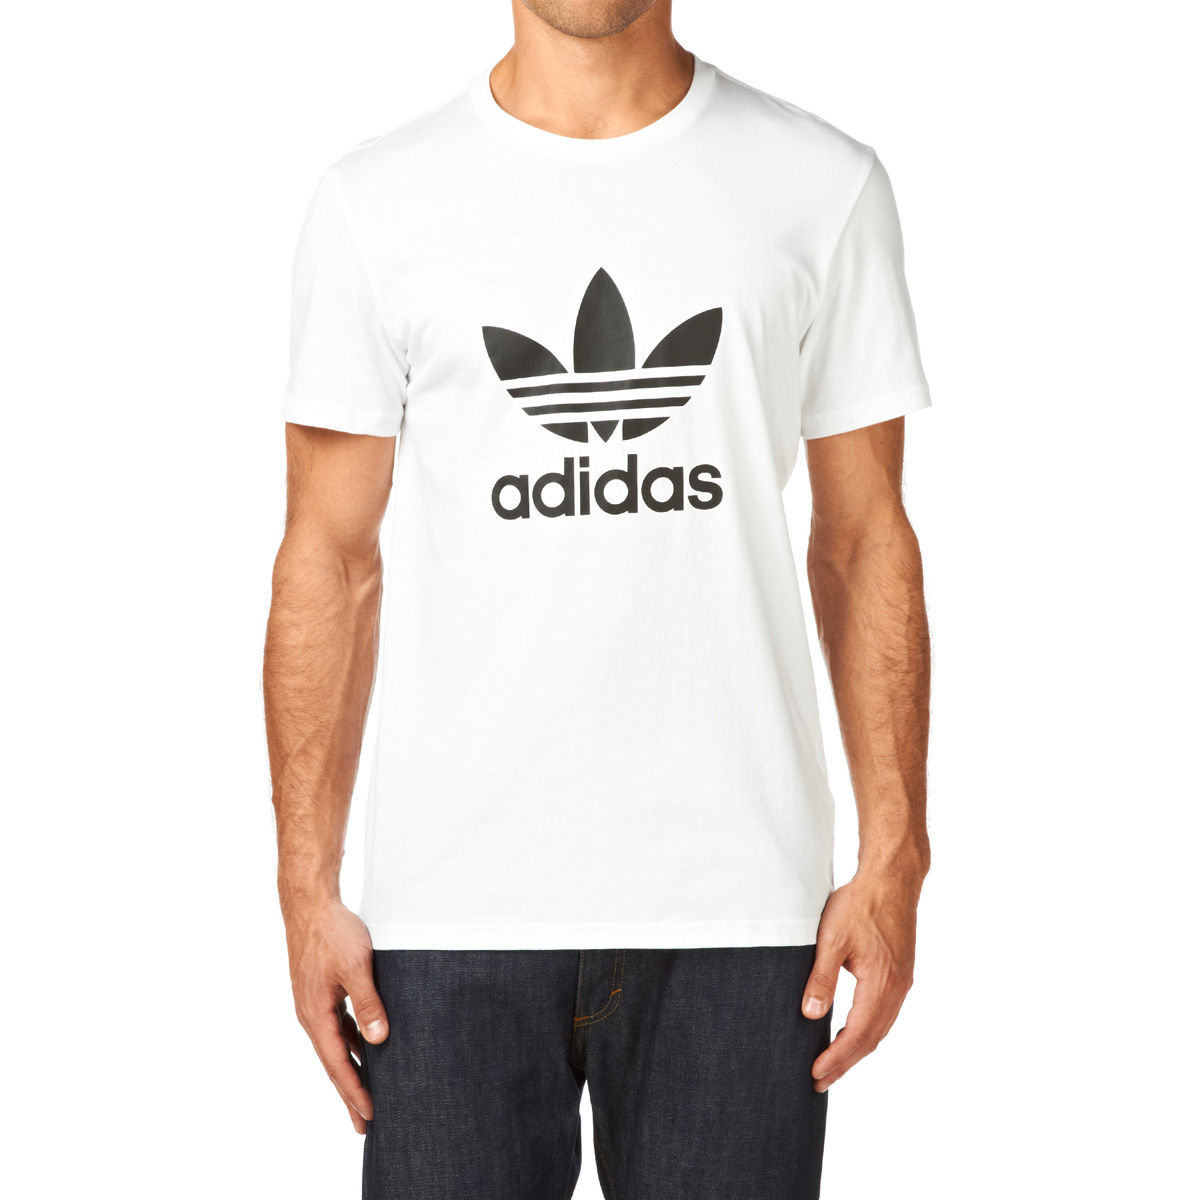 adidas originals t shirt amazon